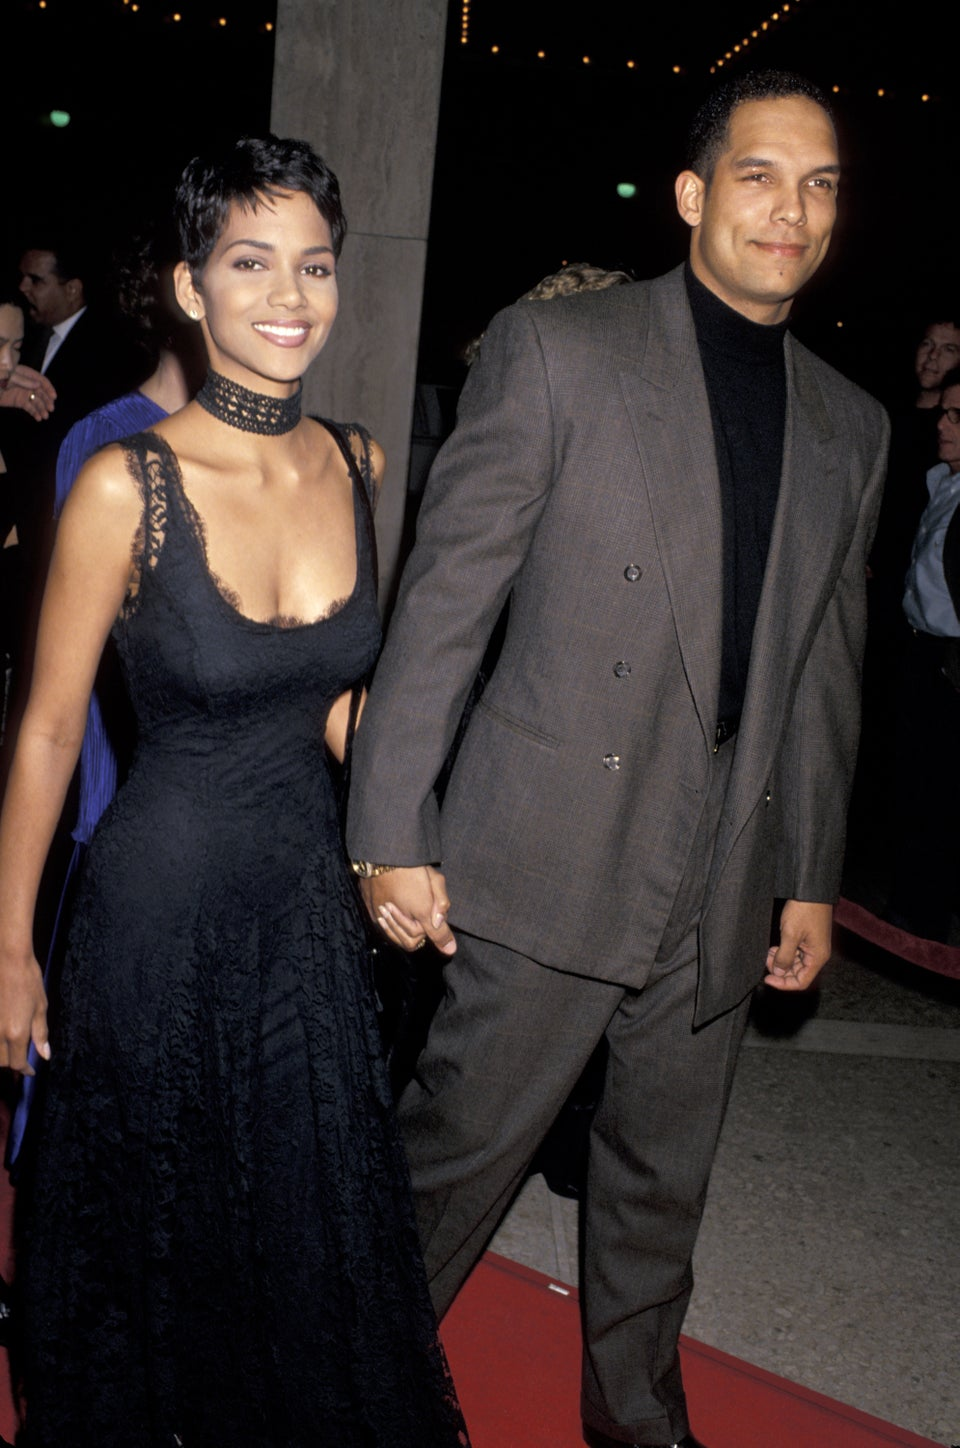 TBT: Halle Berry's Romantic Lace Look is Perfect for Our 90s Obsession